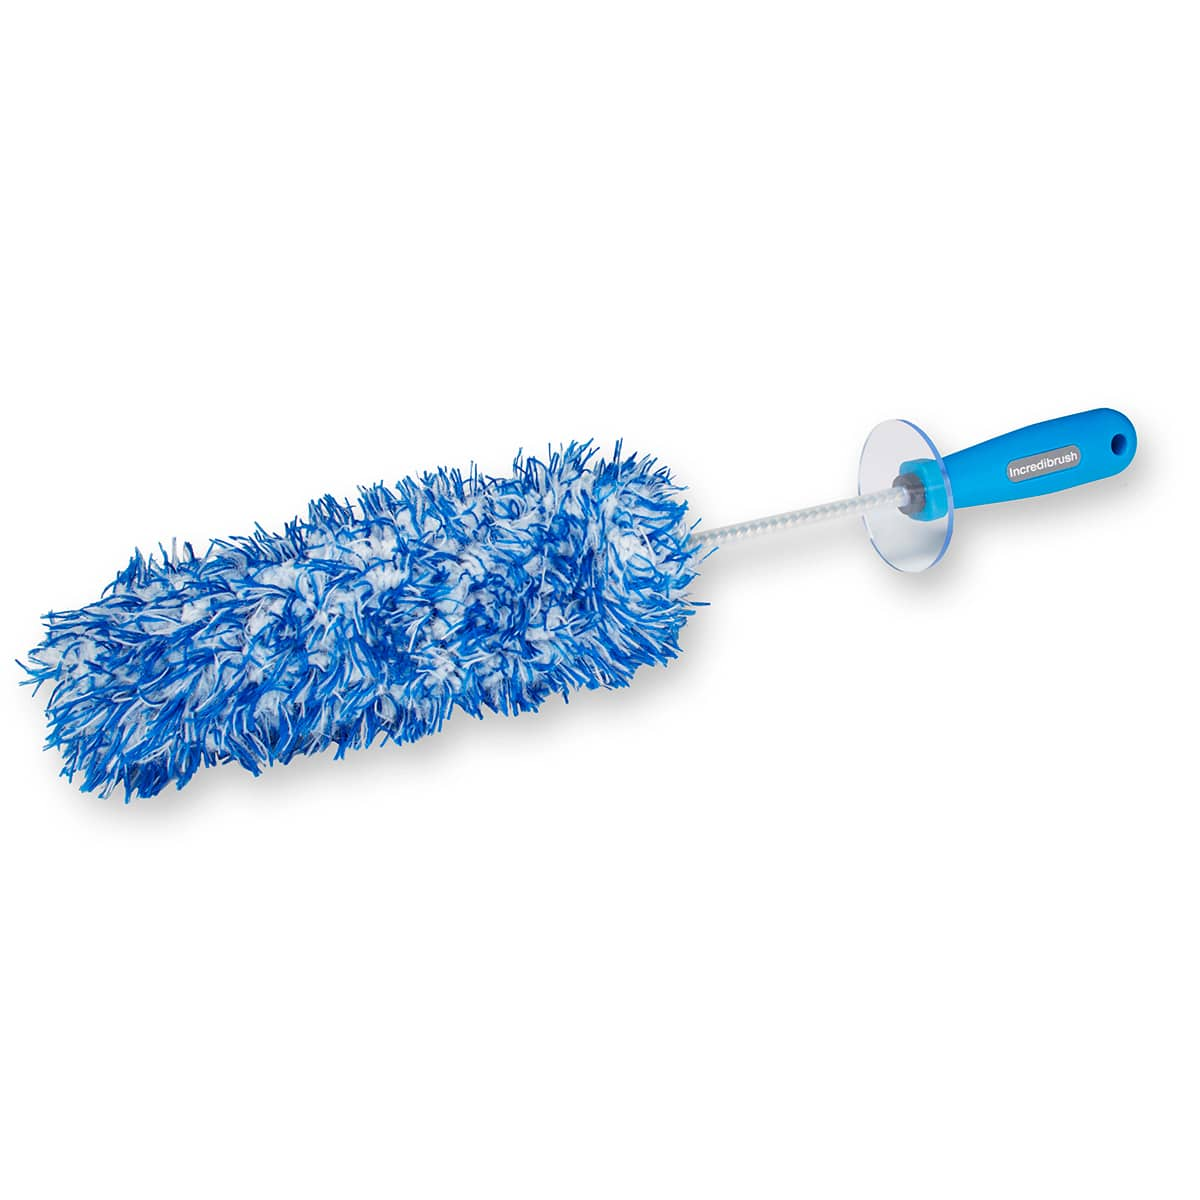 Microfiber Madness Incredibrush